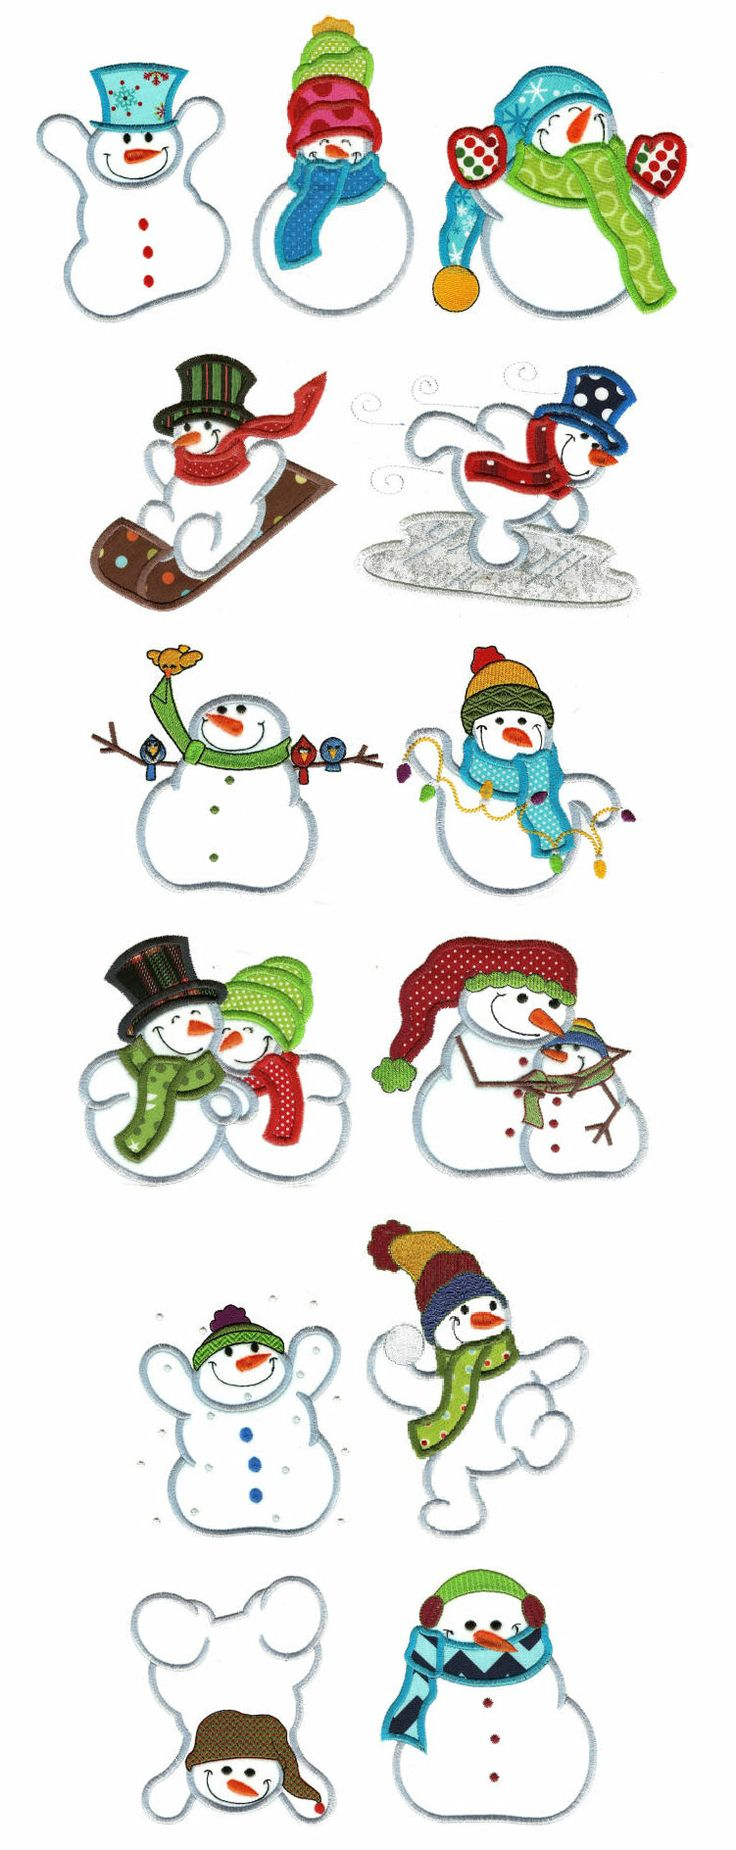 Simply Snowmen Applique Machine Embroidery Designs Collection (26 Designs) $20.00 on Designs by Juju at http://www.designsbyjuju.com/products/dbjj558.aspx